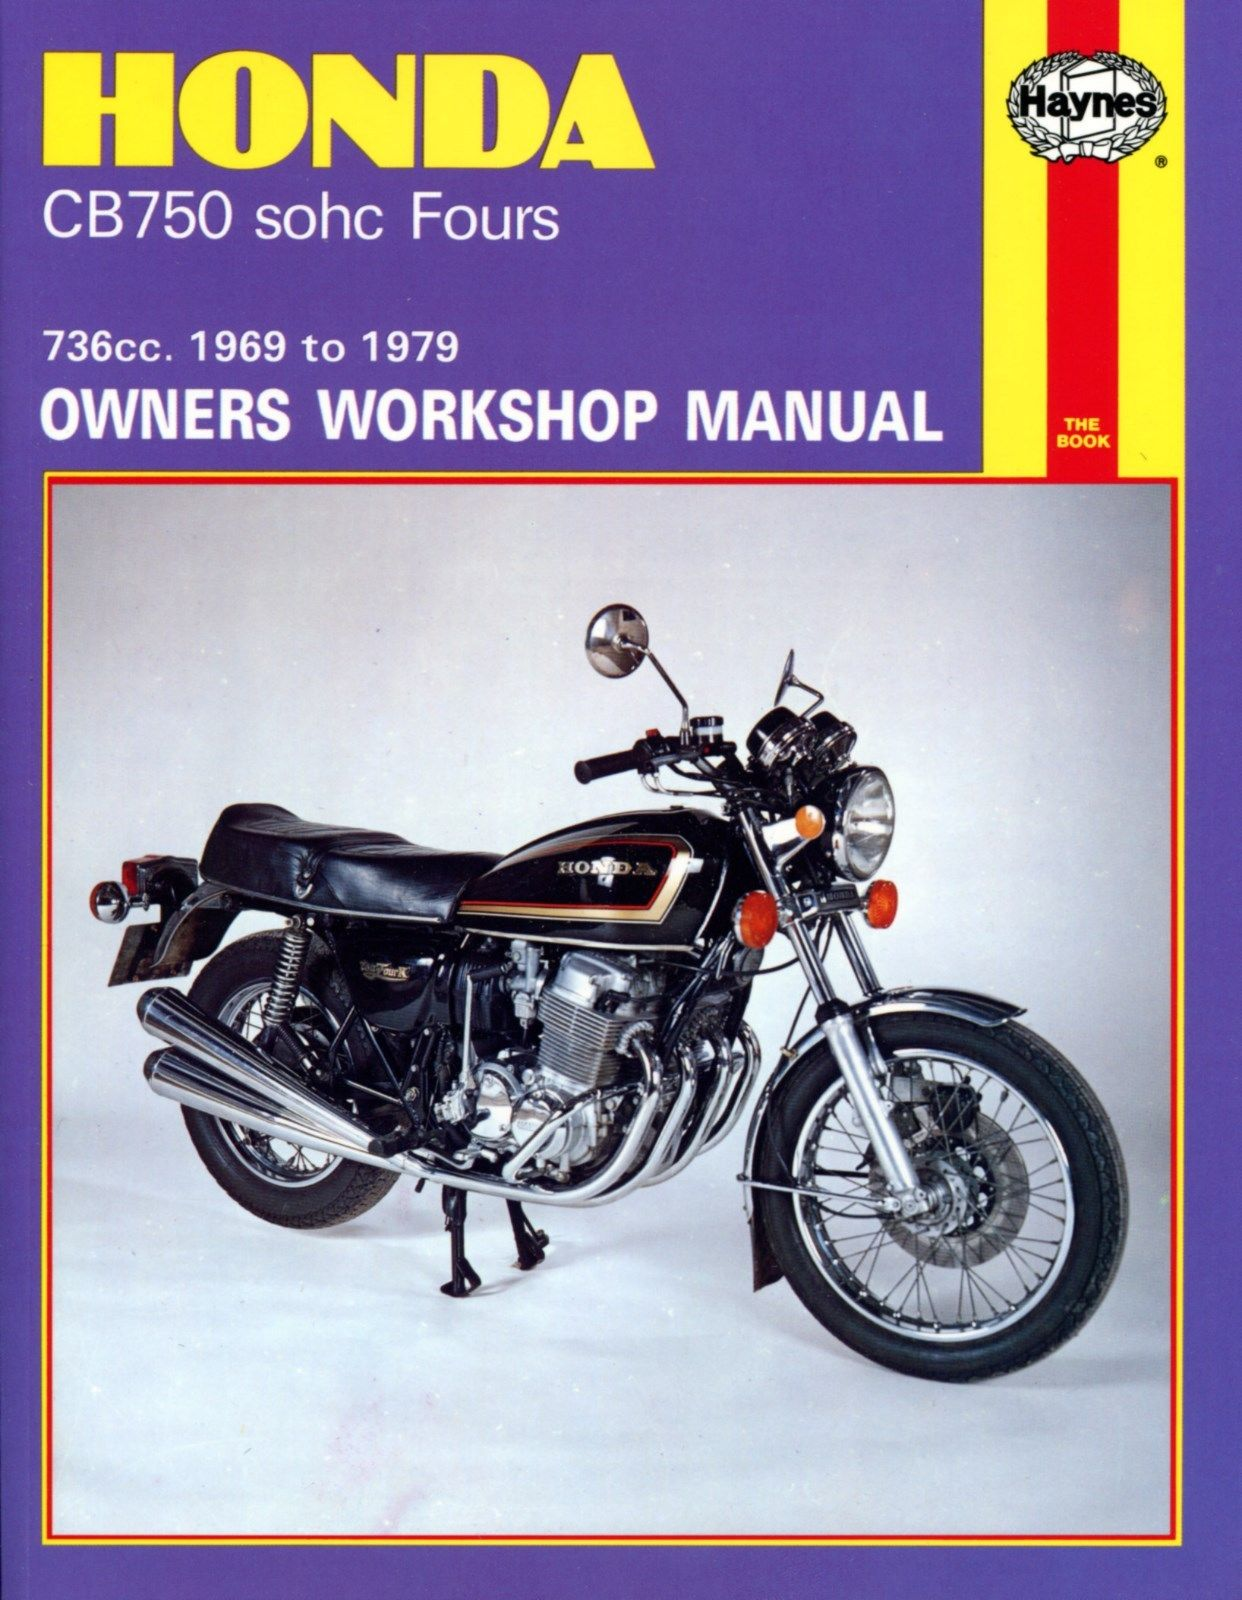 HAYNES MANUAL: HONDA CB750 SOHC FOURS 1969-1979